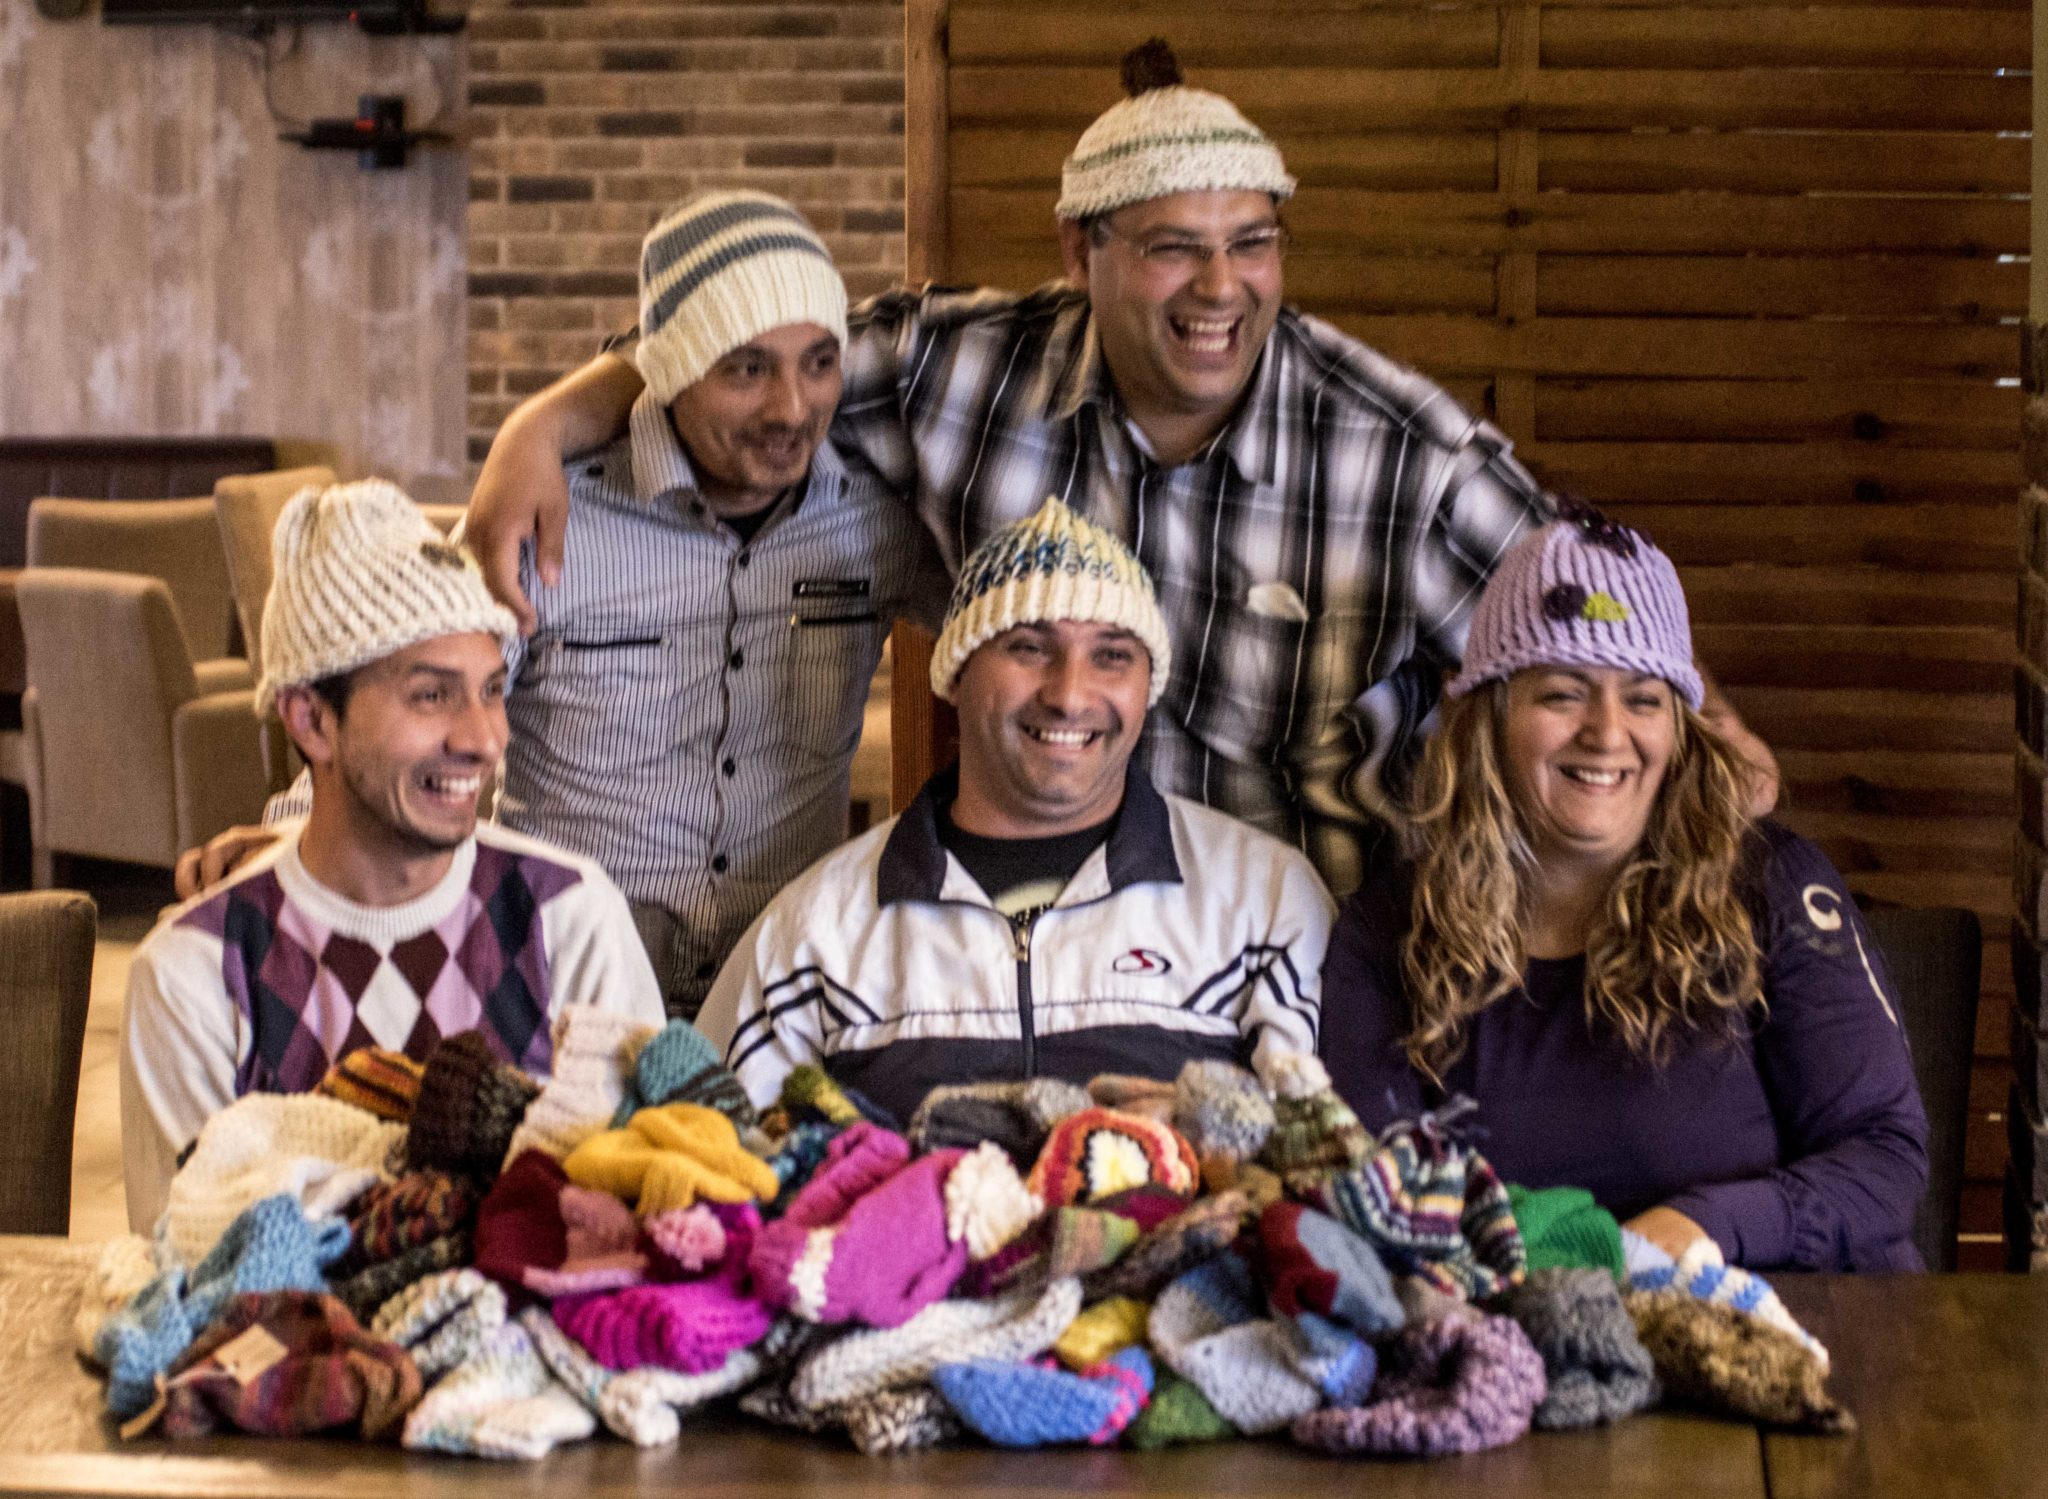 300 Hats for Roma Children – Linking Partners